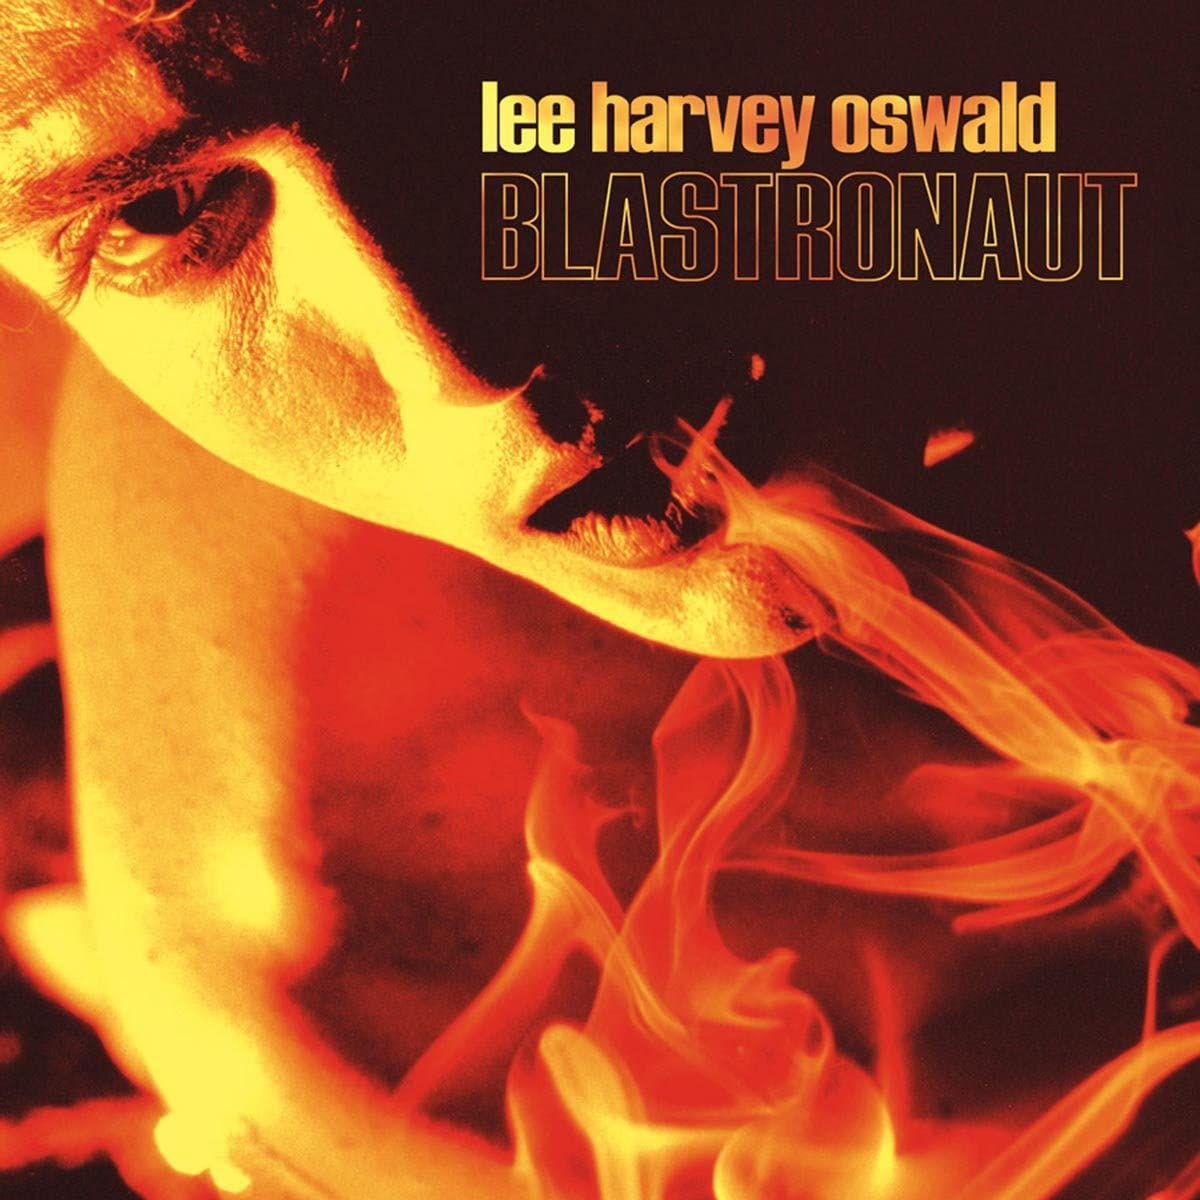 Lee Harvey Oswald/Blastronaut [LP]